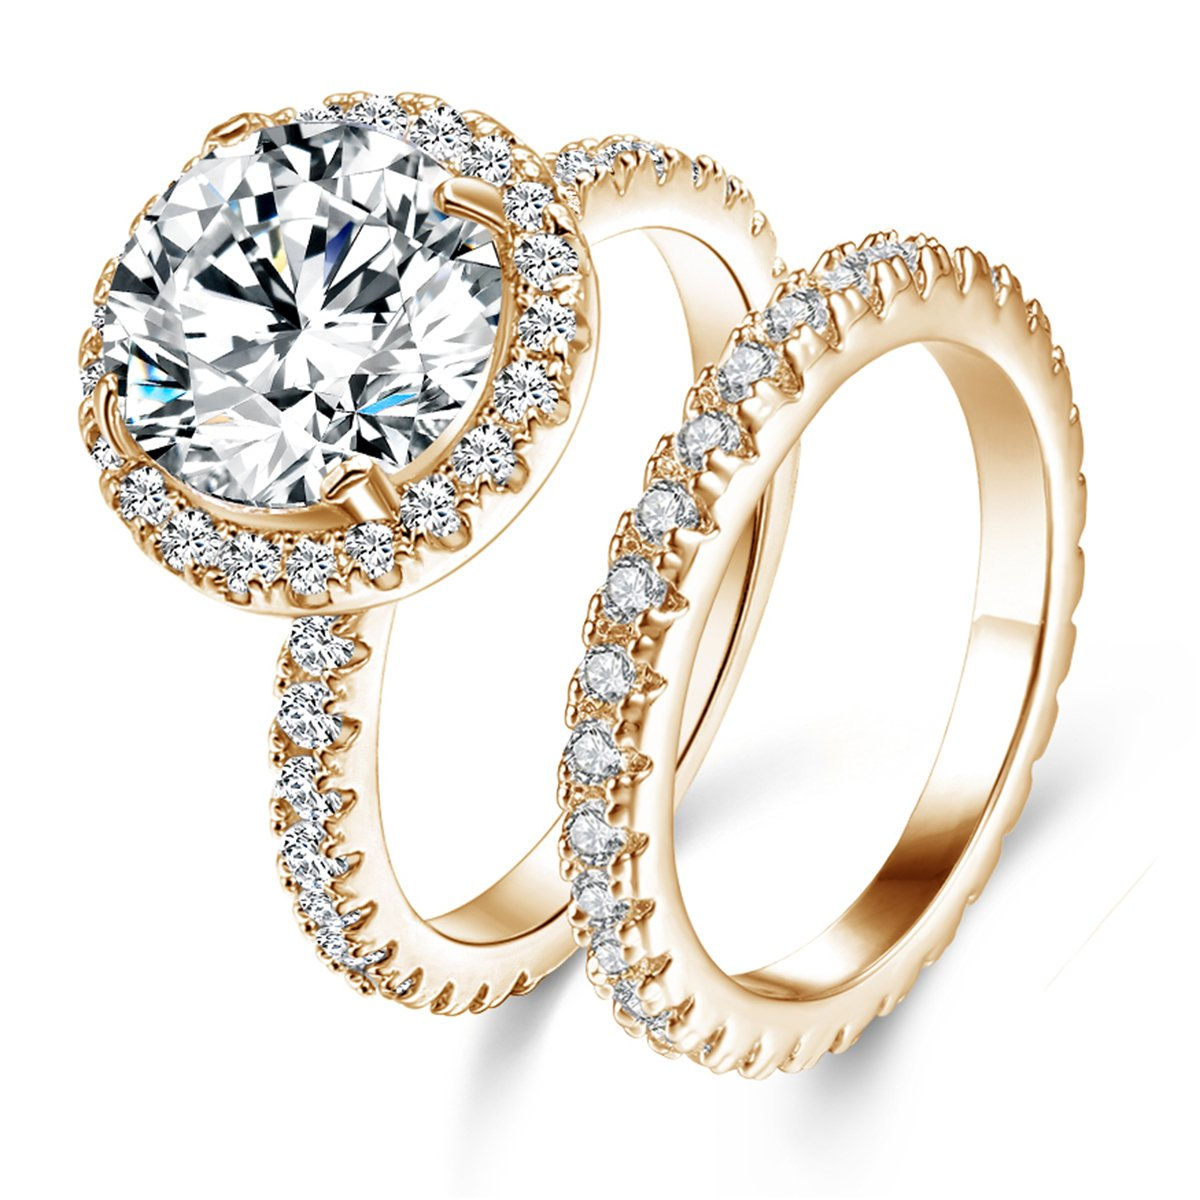 Jiangyue Women Rings AAA Cubic Zirconia Champagne Gold Plated ElegantLuxury 2pcs Set Ring Party Jewelry Size 6